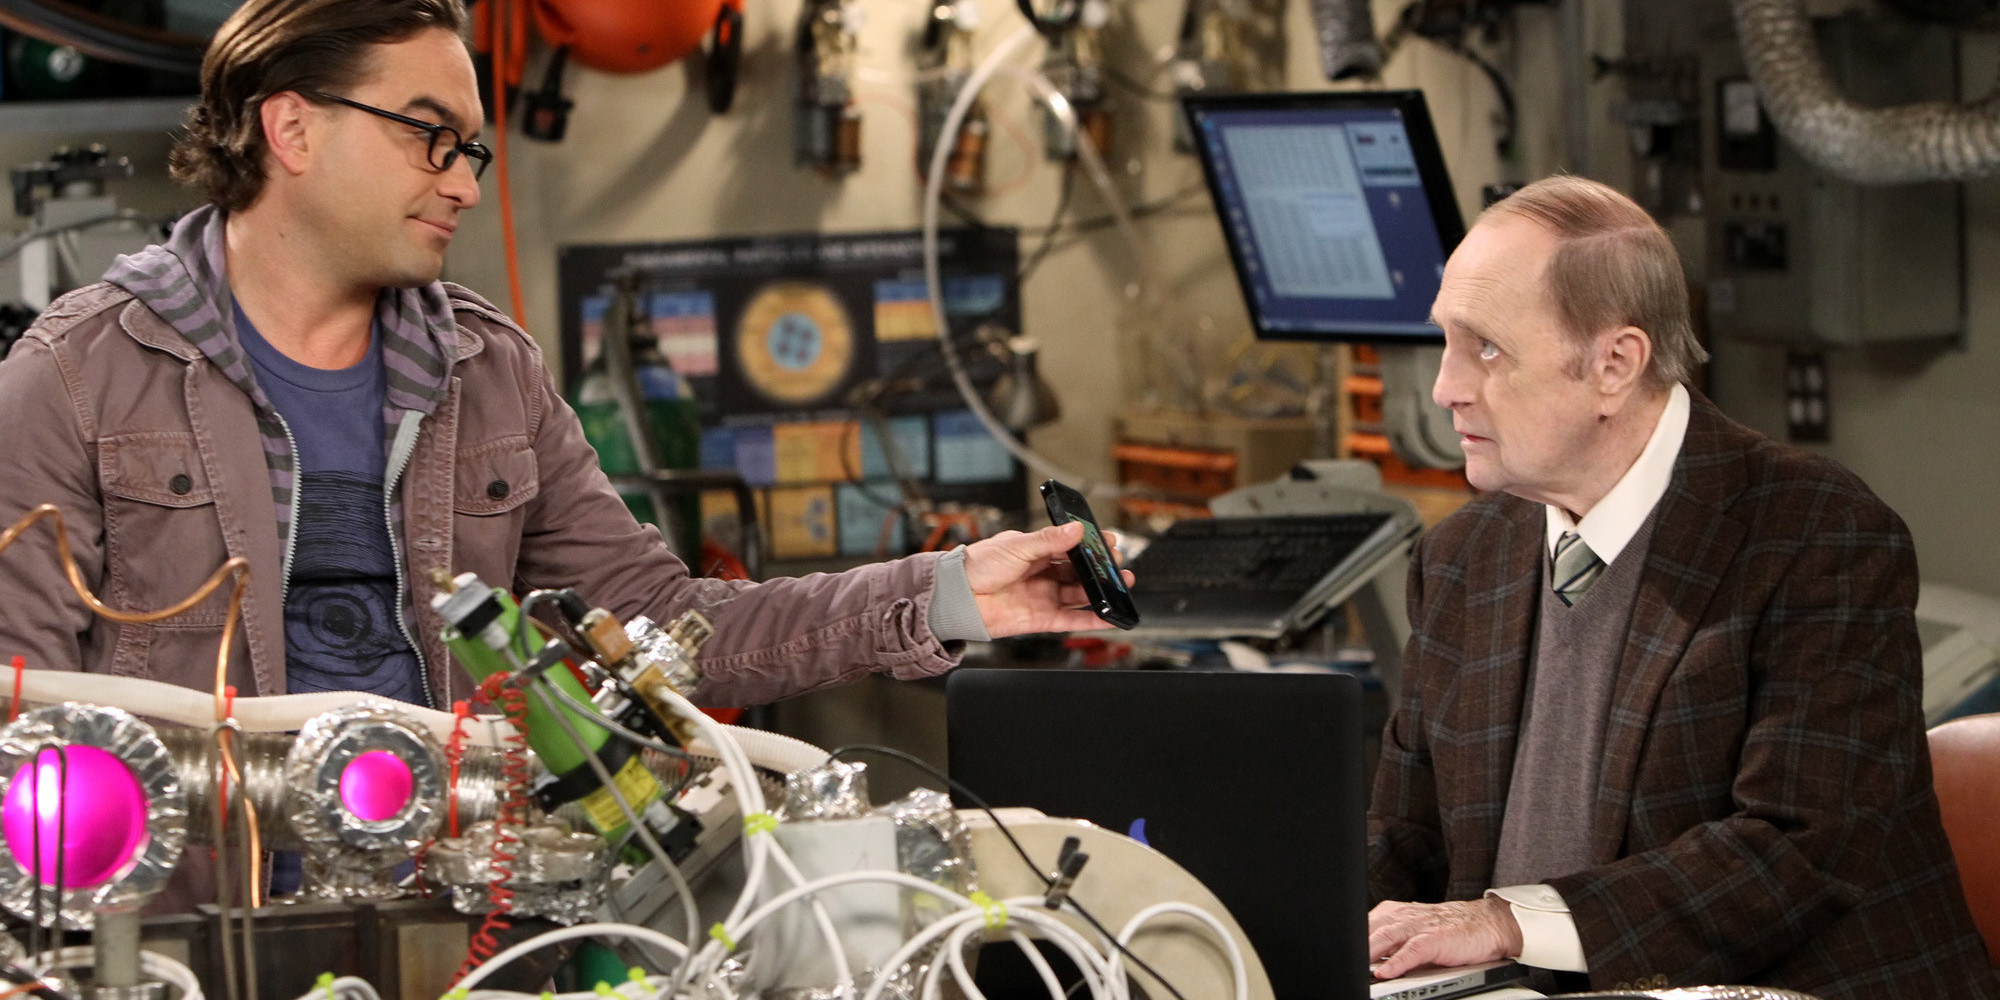 Big Bang Theory' Recap: Sheldon Vs. Newhart Round Two | Alex ...: www.huffingtonpost.com/alex-rabinowitz/big-bang-theory-recap-she_b...